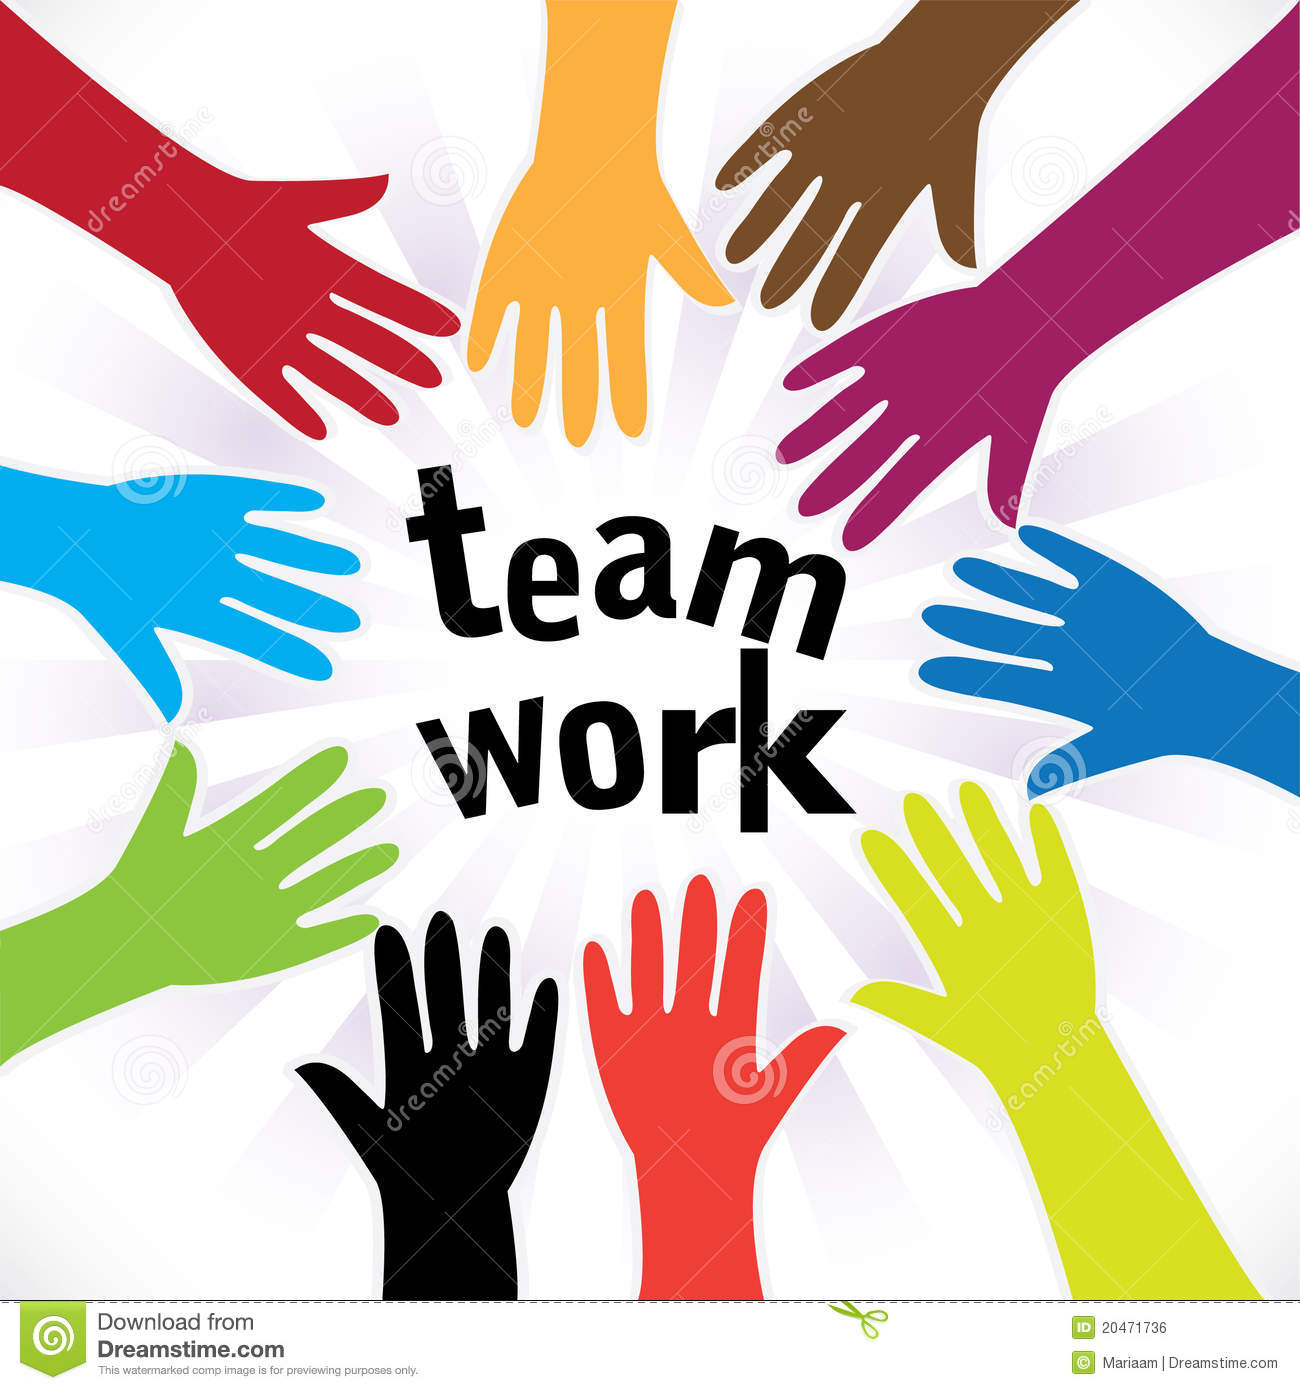 working in teams Chapter 6: teamwork and working in teams 40 introductory engineering design teams have been variously defined however, most definitions share common themes.